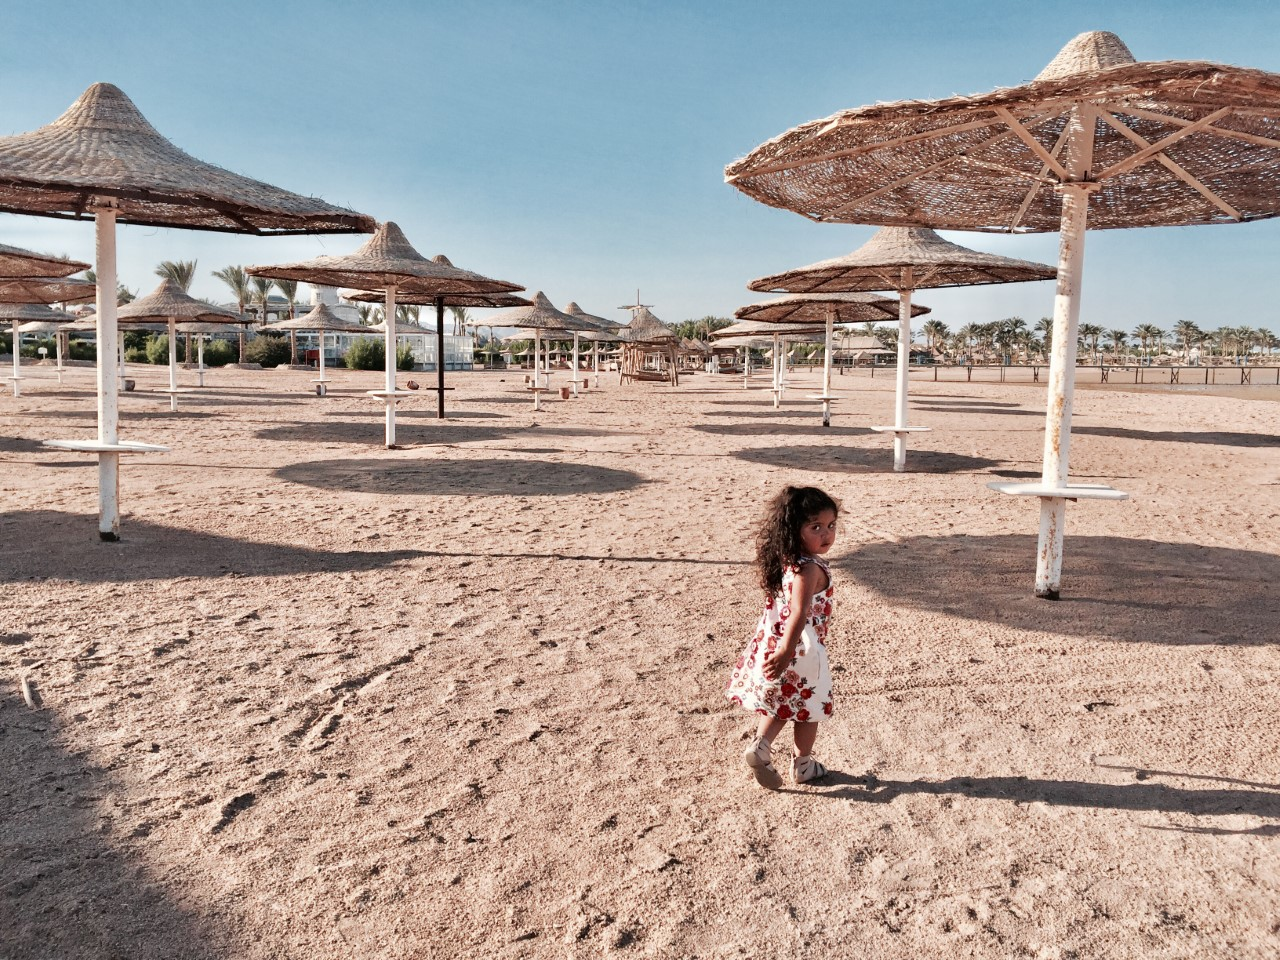 SHARM-EL SHEIK - Egyptian resort town between the desert of the Sinai Peninsula and the Red Sea. It's known for its sandy beaches, clear waters and coral reefs. Perfect place to go relax after the hustle & bustle of Cairo.